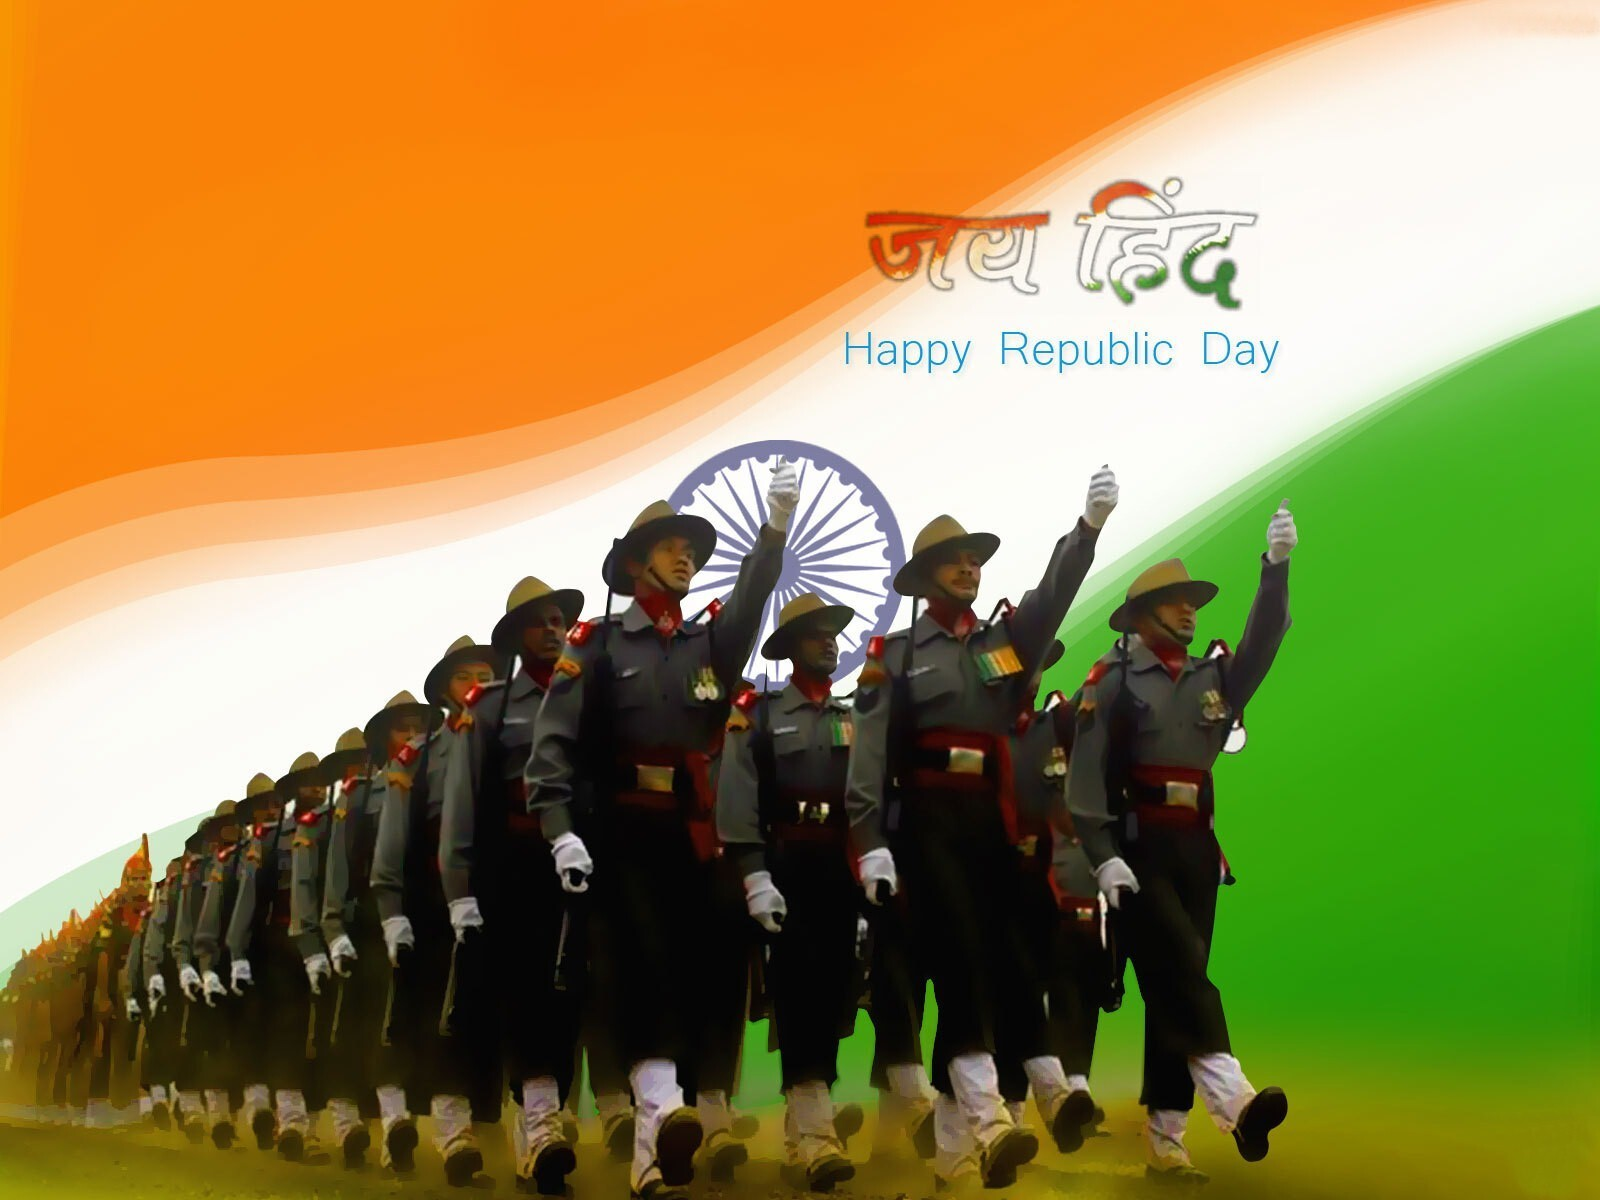 Jay hind happy republic day wallpaper hd wallpapers thecheapjerseys Images